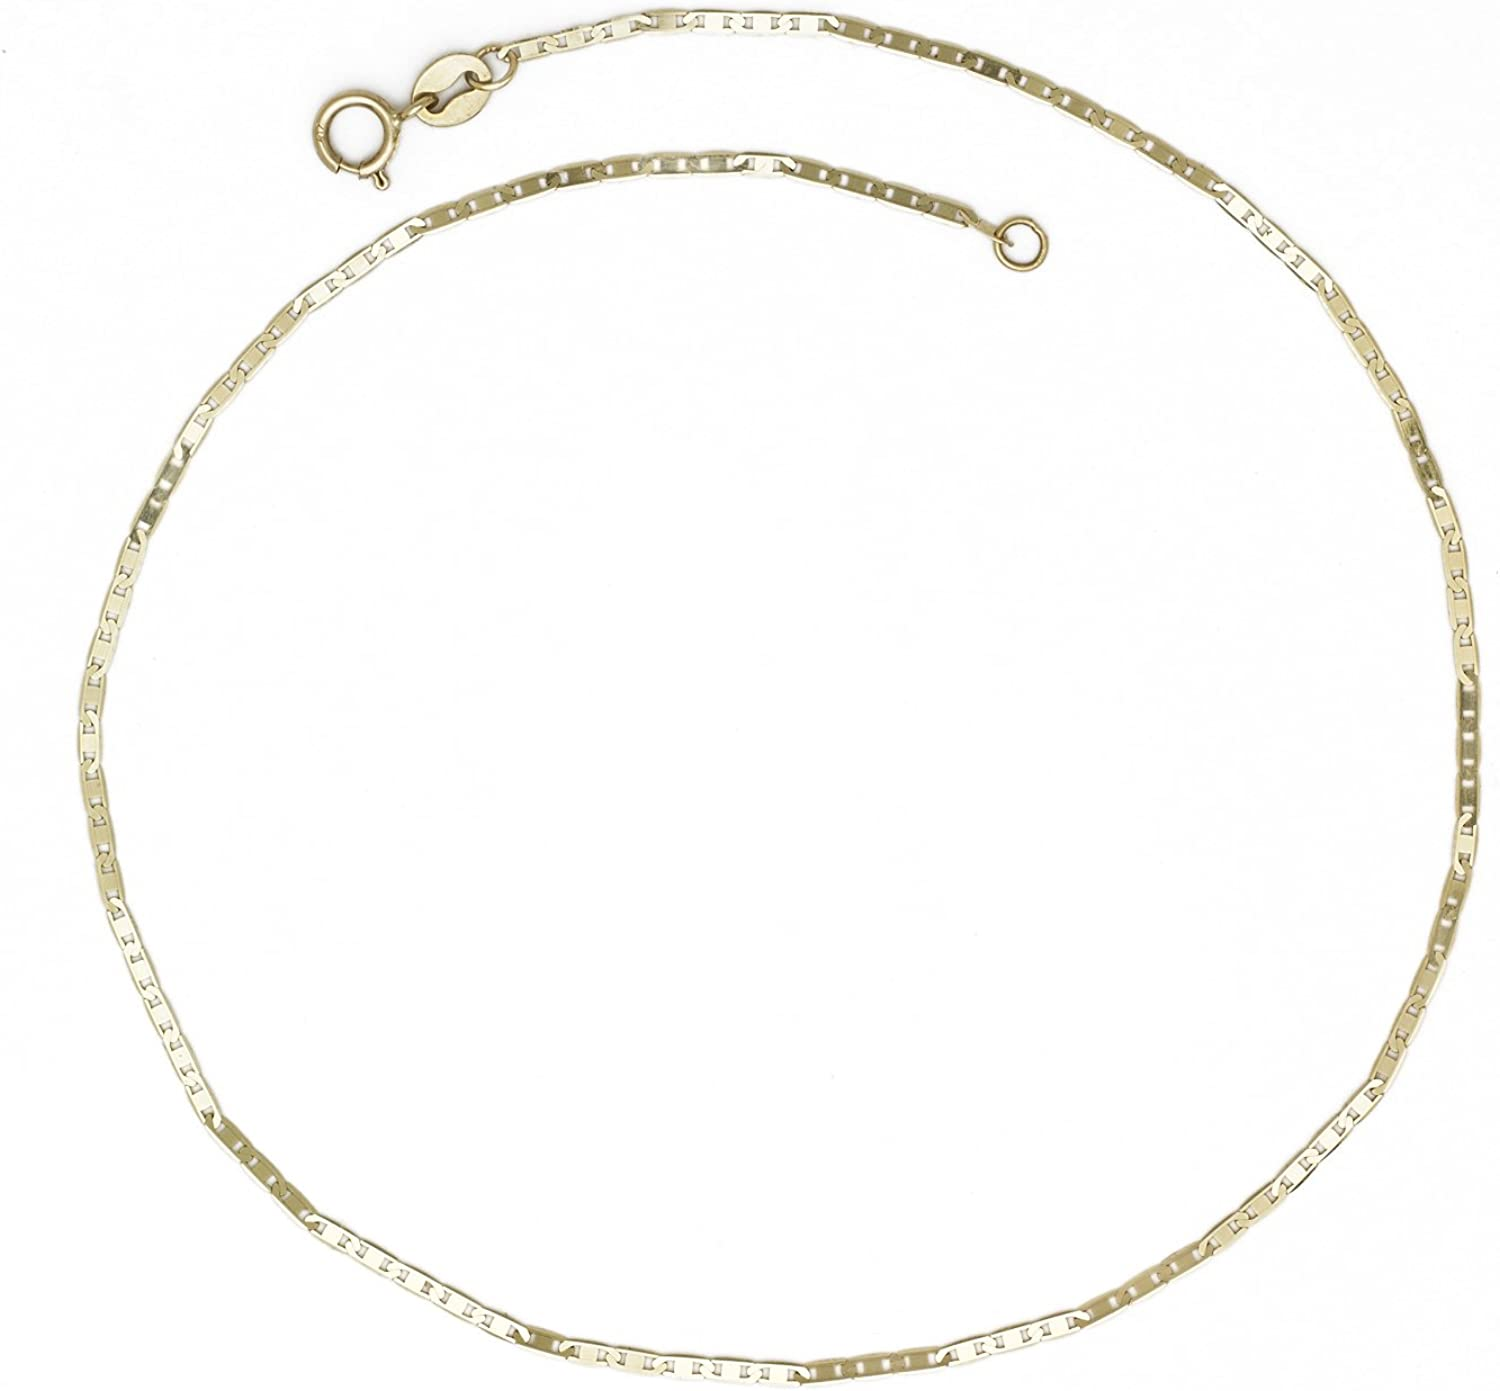 Jewelryweb Solid Manufacturer OFFicial shop 10K Yellow Rare Gold Thin 1.3mm 10-inch Flat Mariner